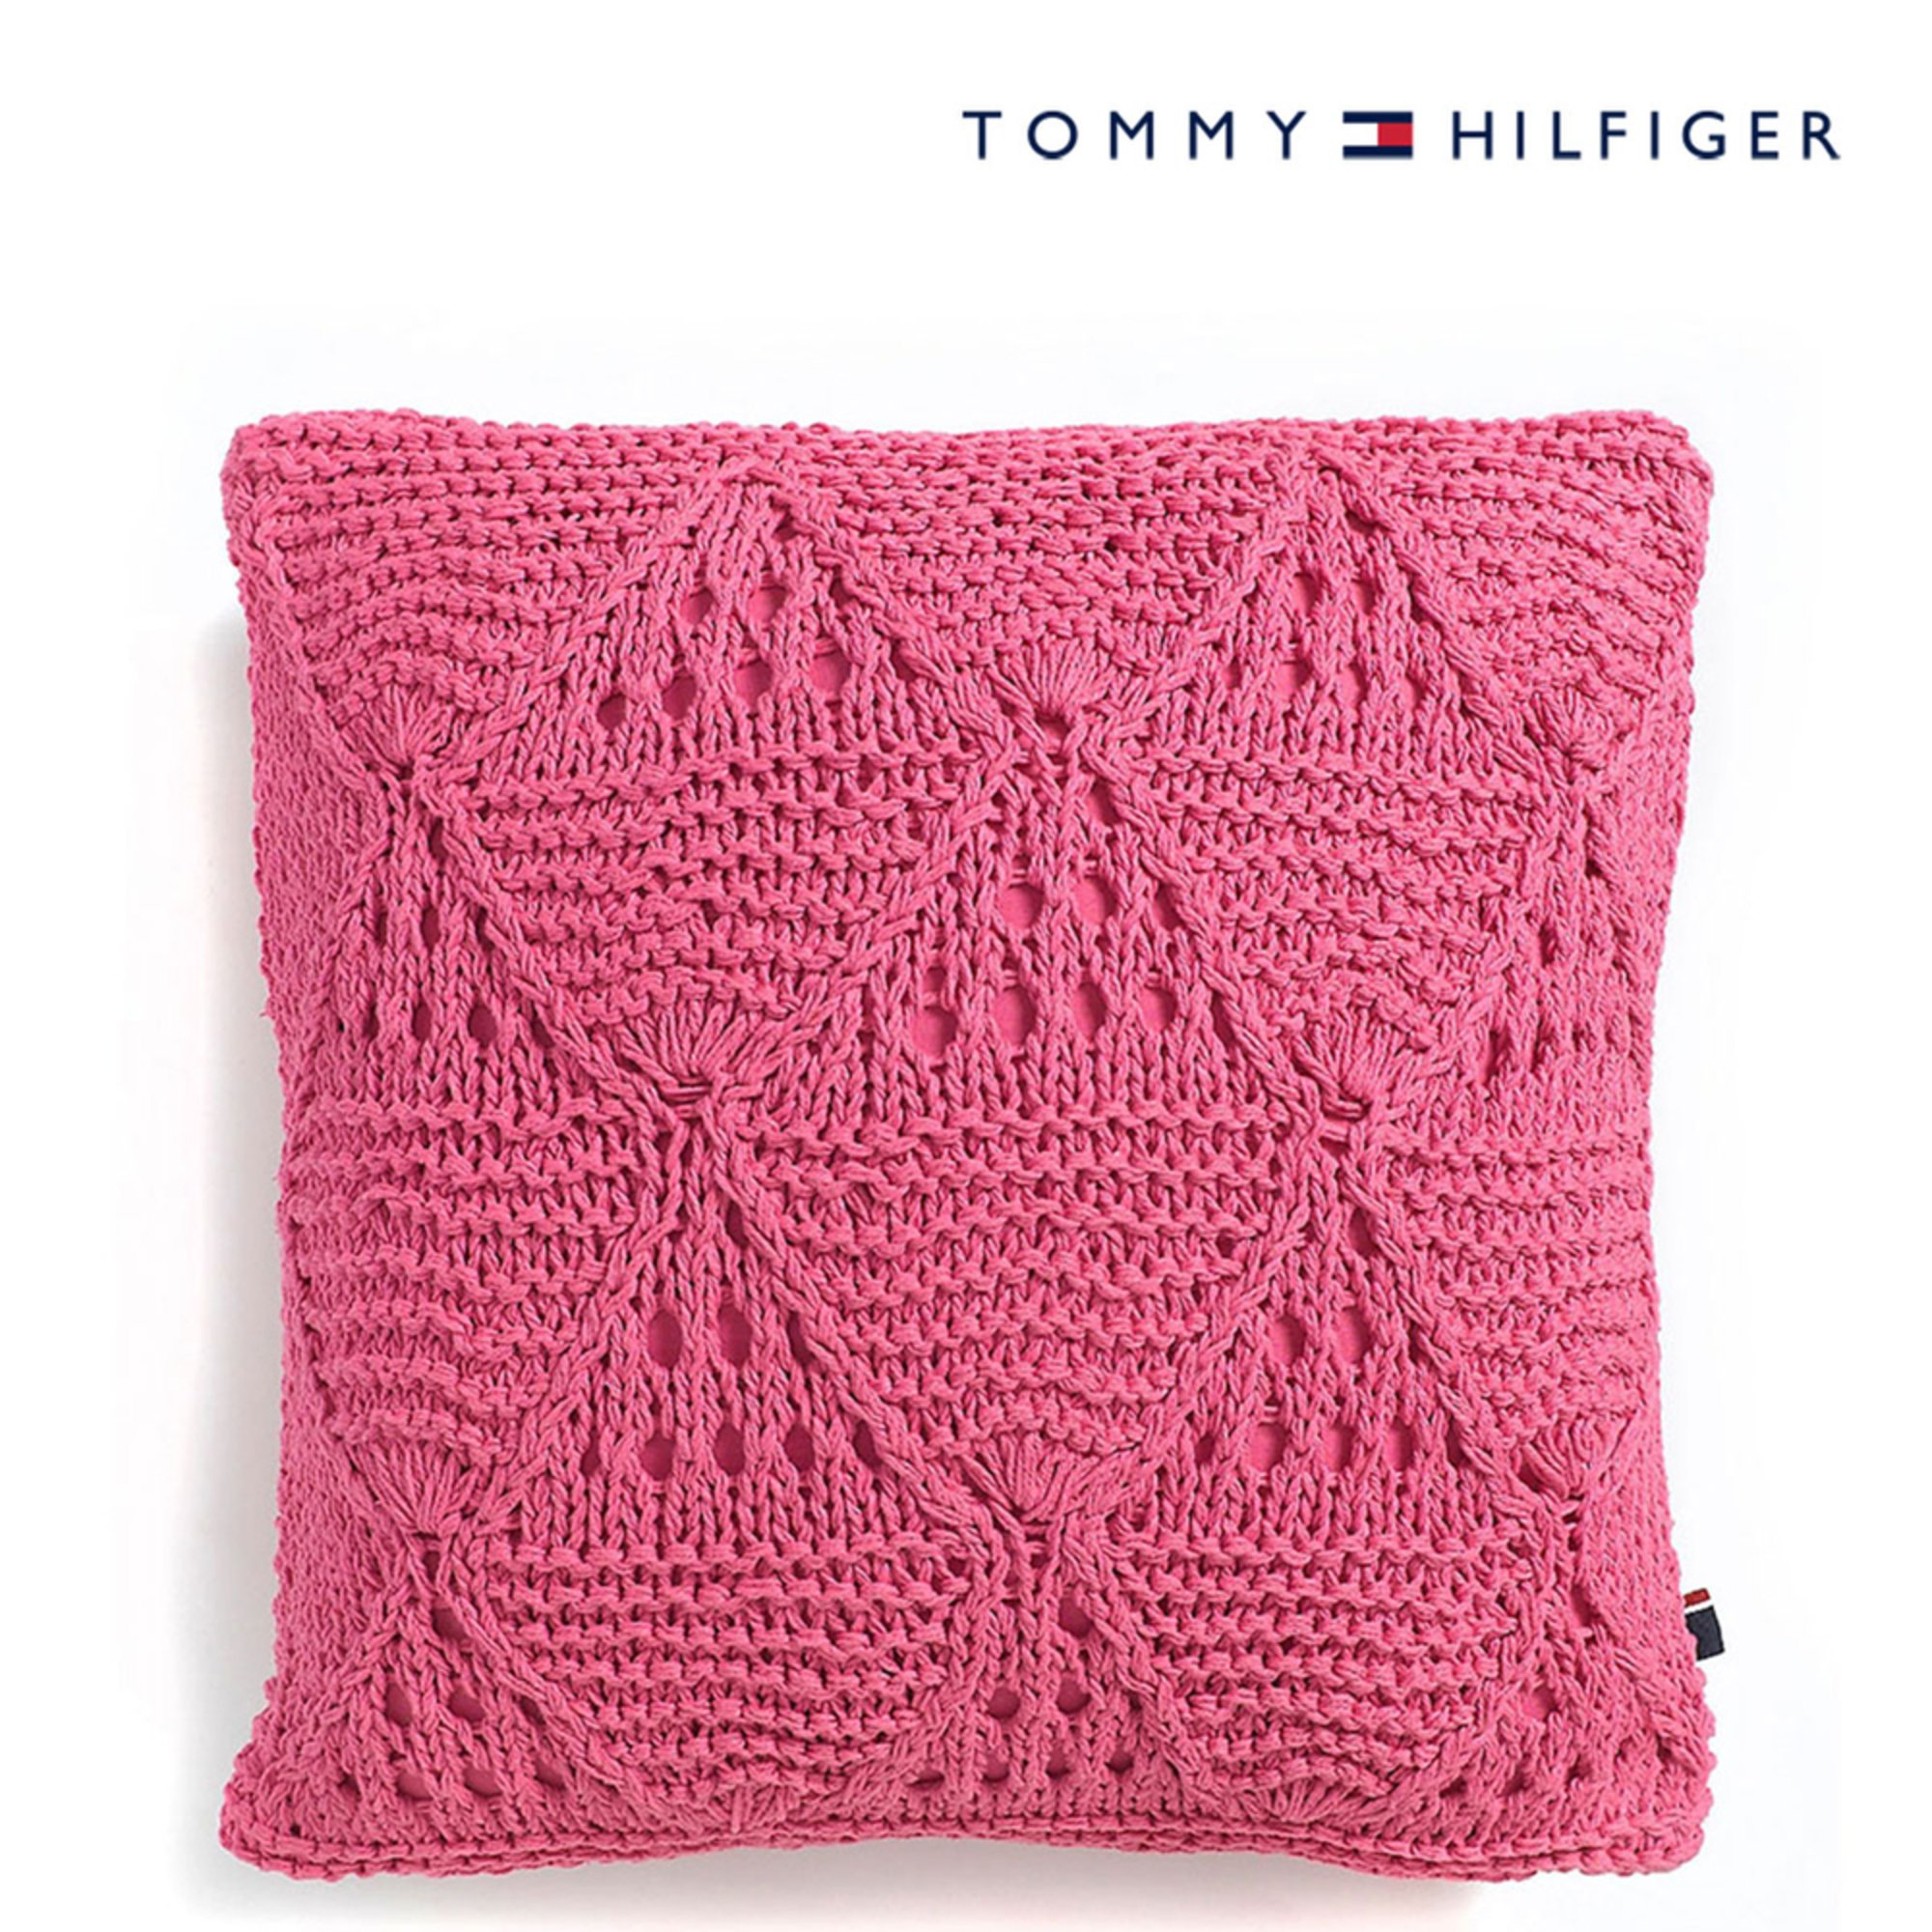 Tommy Hilfiger Decorative Bed Pillows : Tommy Hilfiger Bar Harbor Knit Decorative Pillow Decorative Pillows For The Home - Shop Your ...